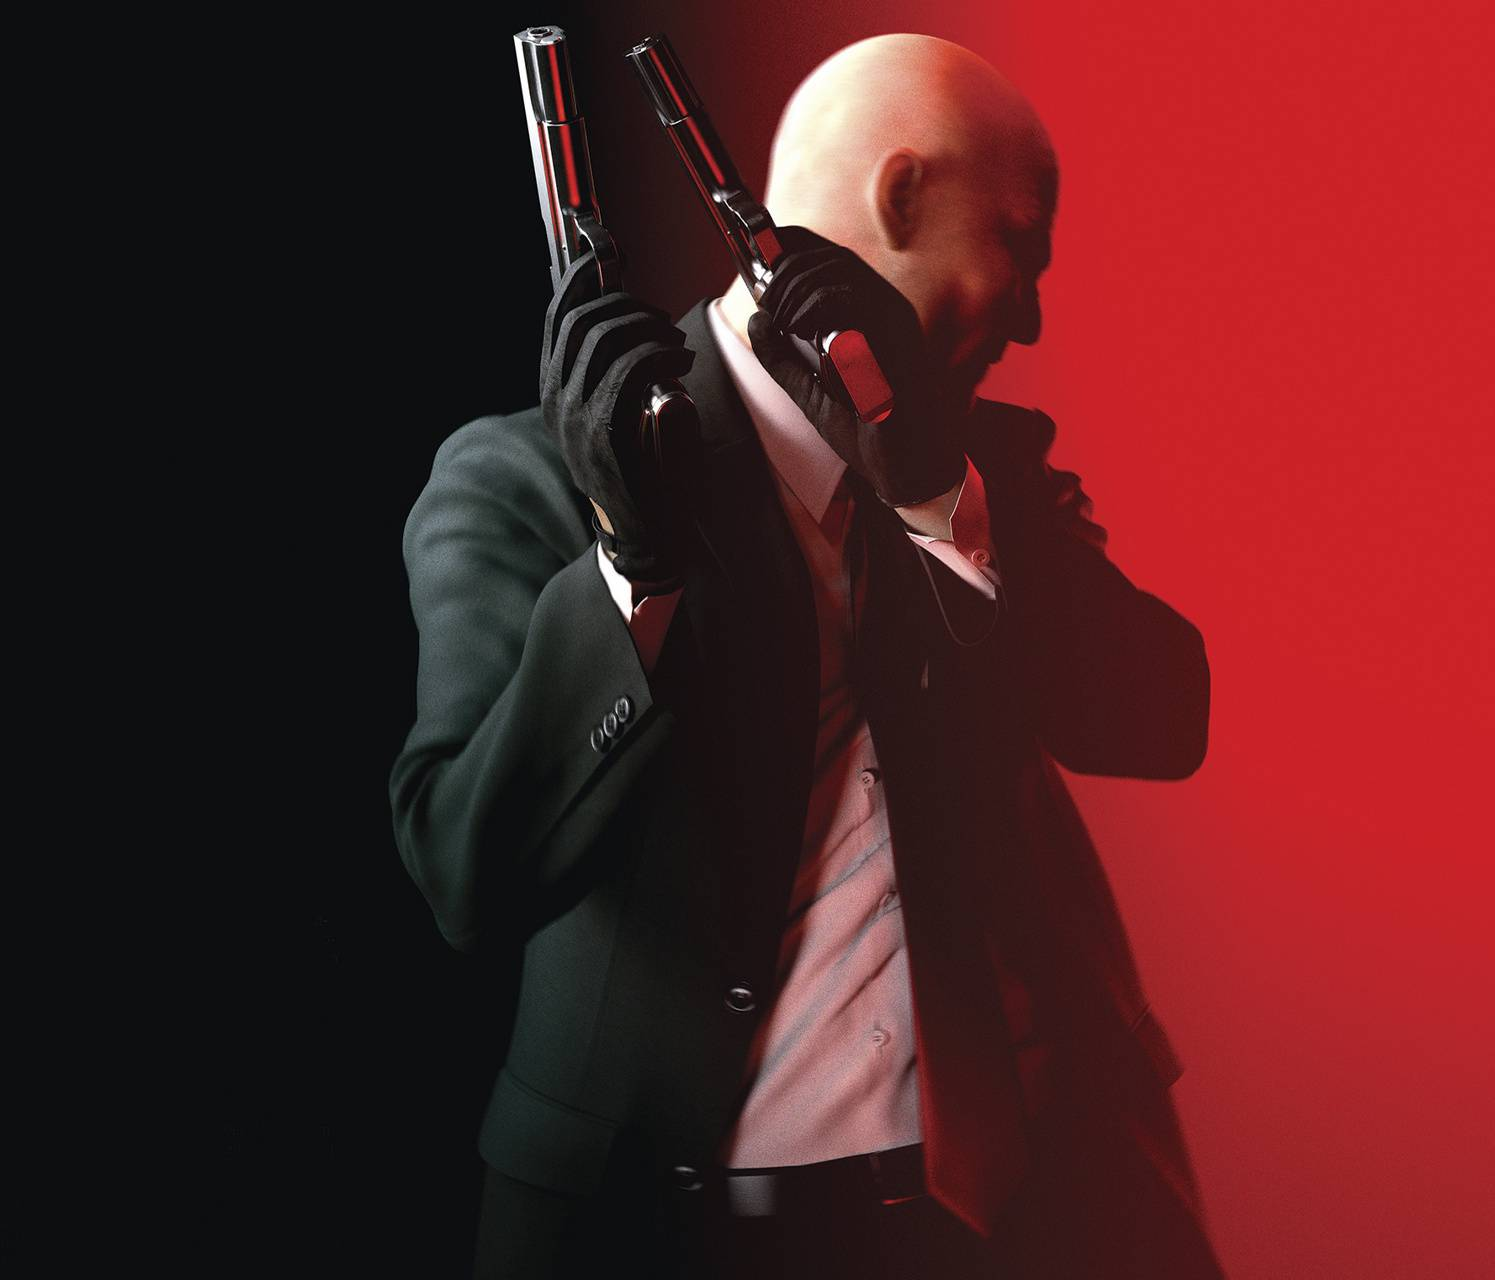 Hitman 2 Wallpaper By Hussainali181 82 Free On Zedge